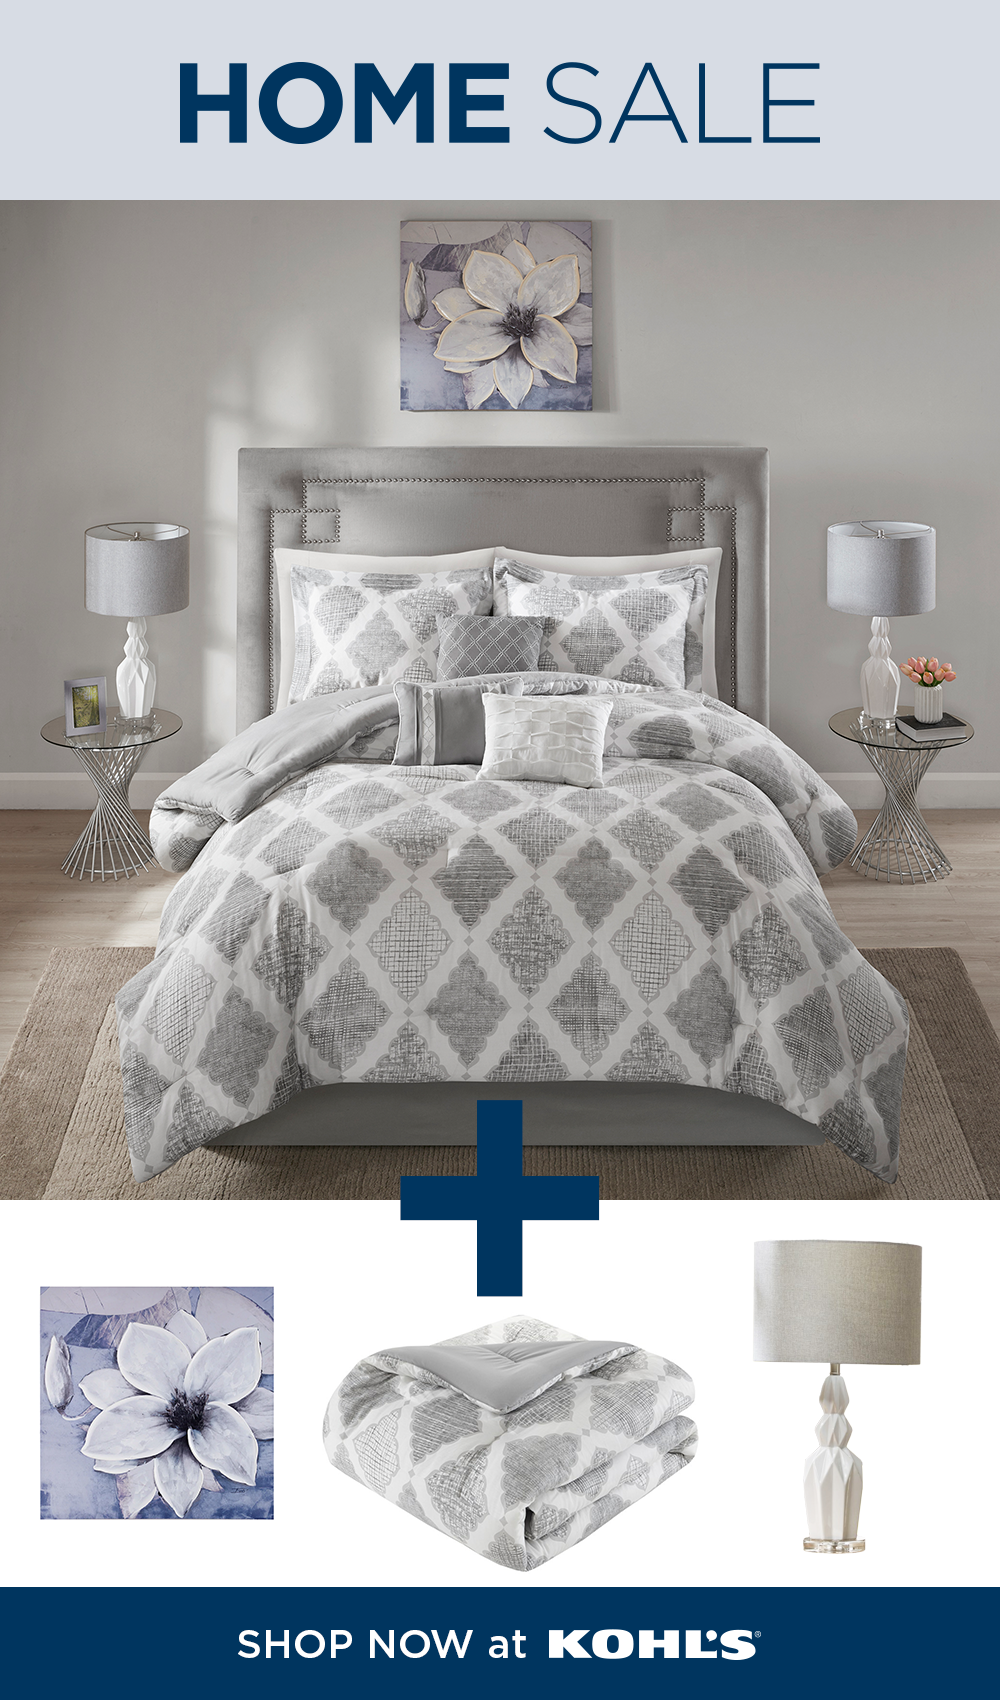 Shop Bedroom Sets At Kohl S Like What You See Shop This Look Now Through April 20 During Our Home Sale Get Th Bedroom Sets Bedding Sets Master Bedroom Home